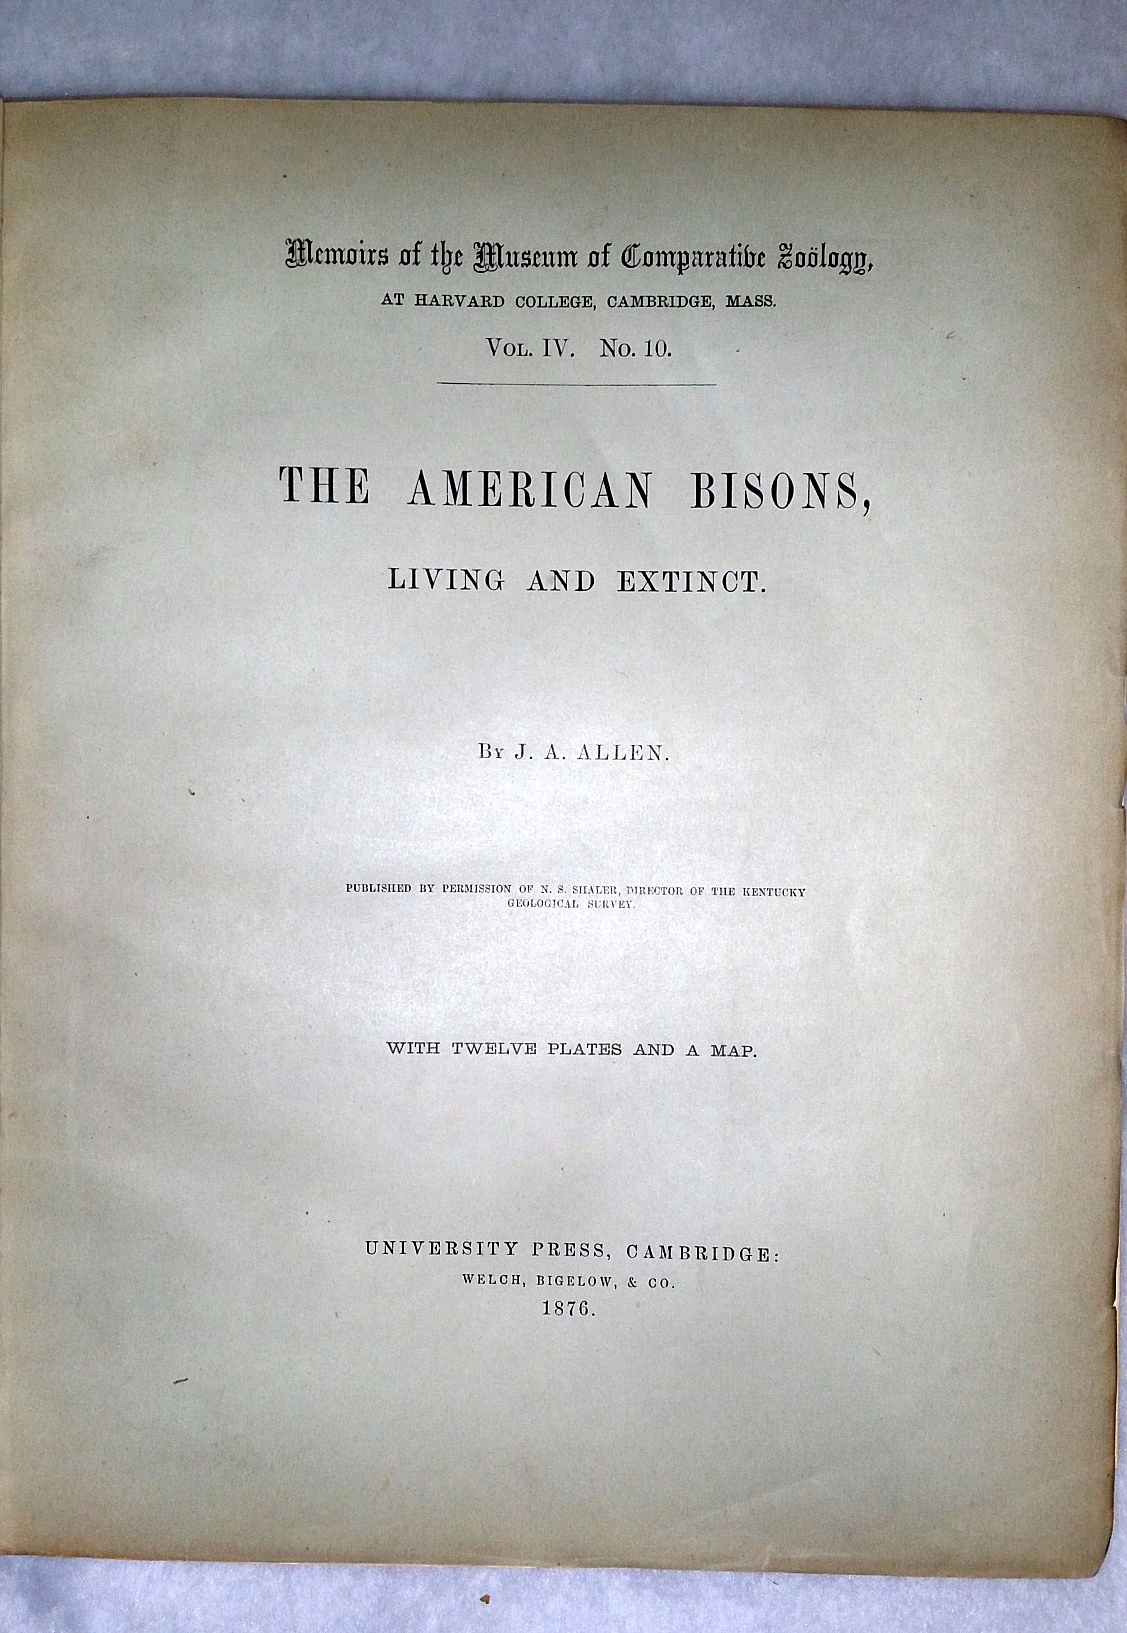 Image for The American Bisons, Living and Extinct (Memoirs of the Museum of Comparative Zoology, Vol. IV. No. 10)